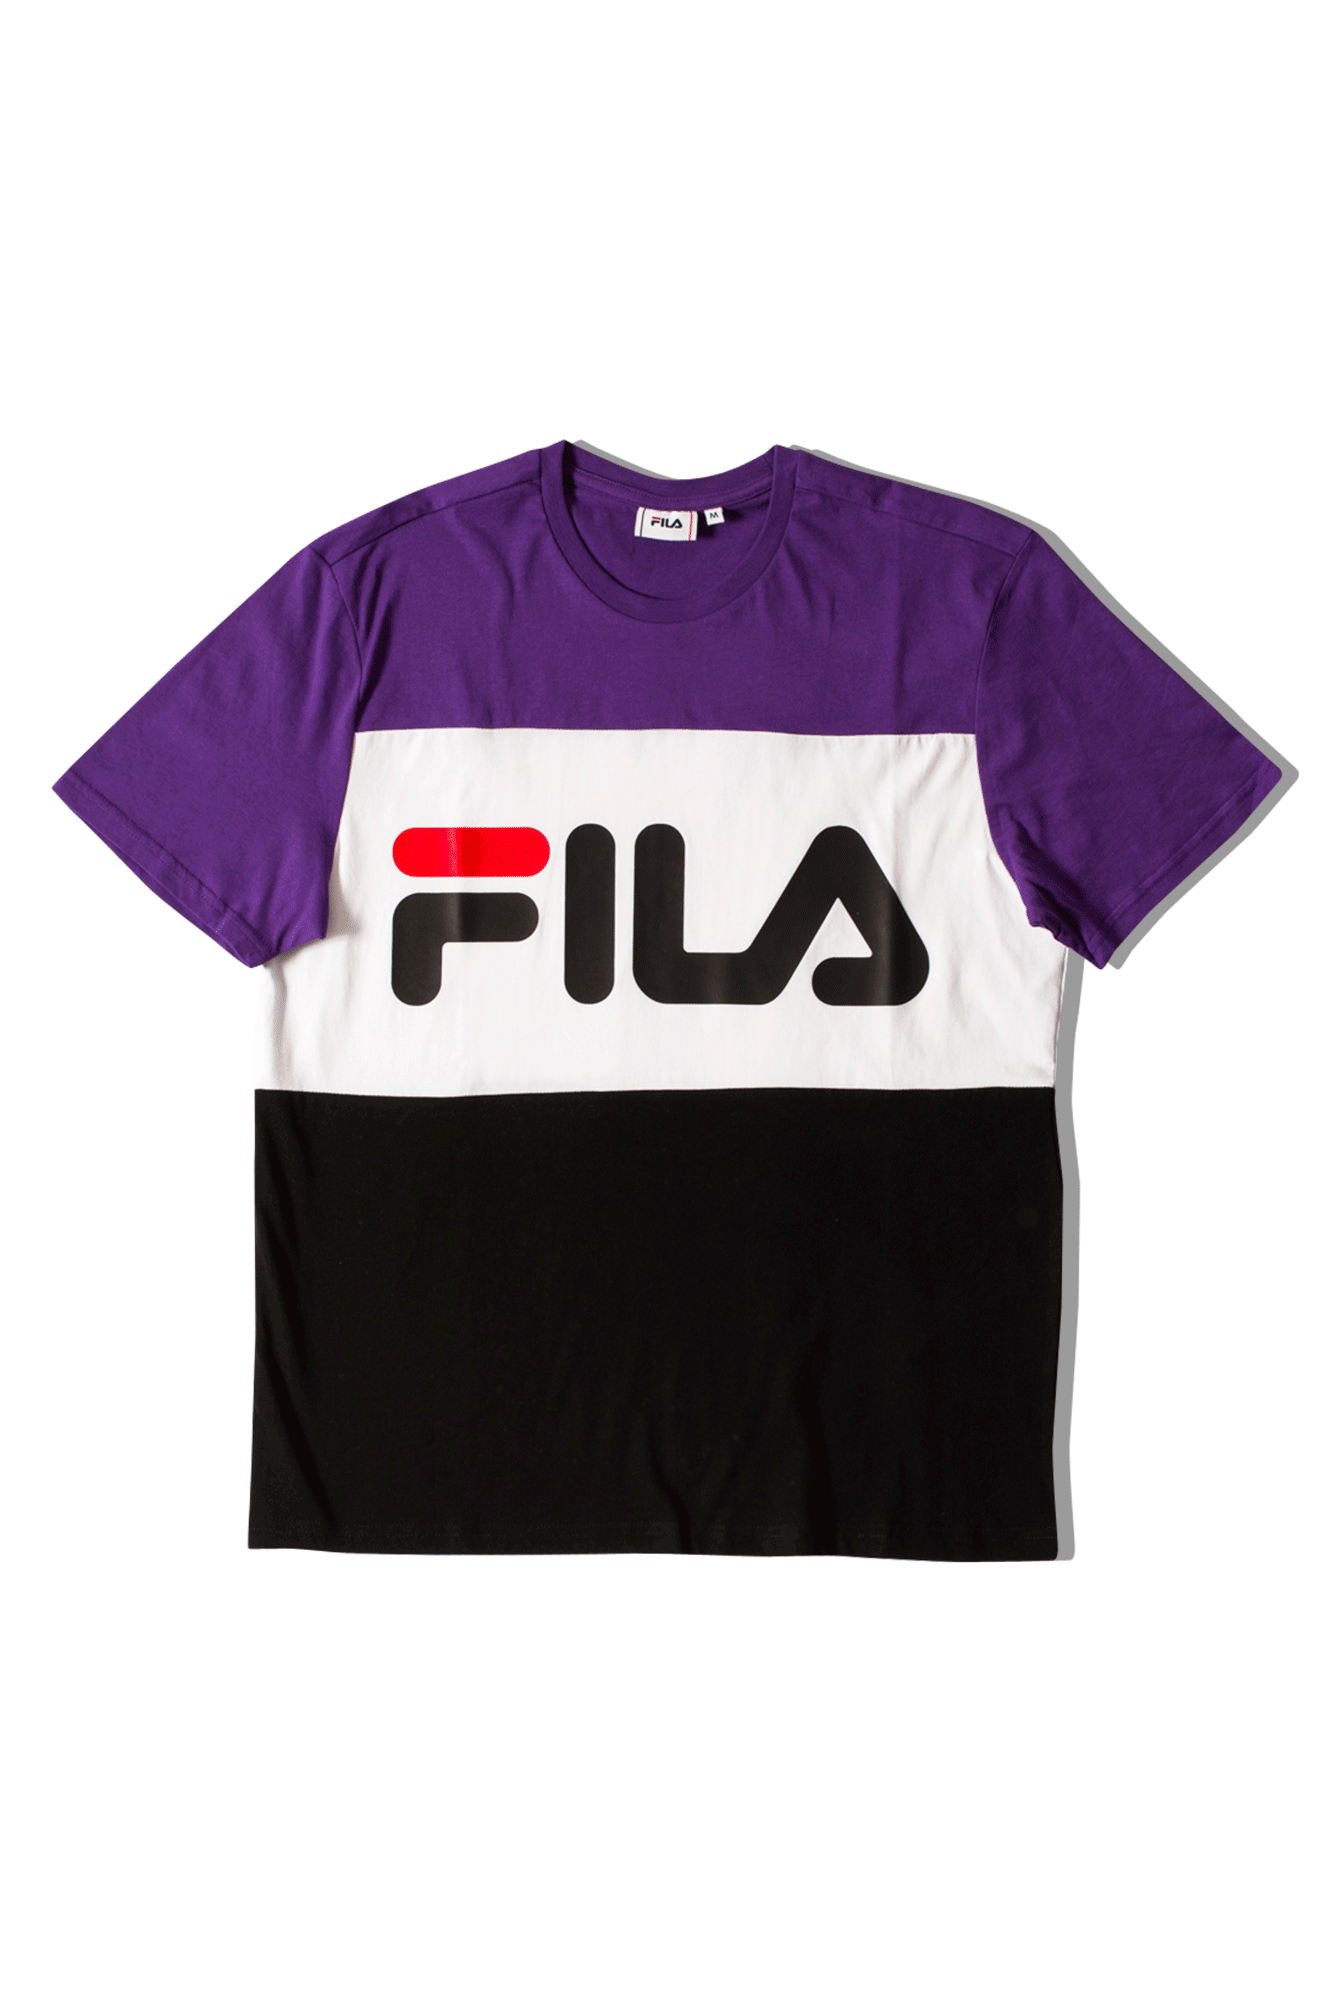 Fila T-Shirts Day Tee Black 681244A178#000#C0010#XS - One Block Down